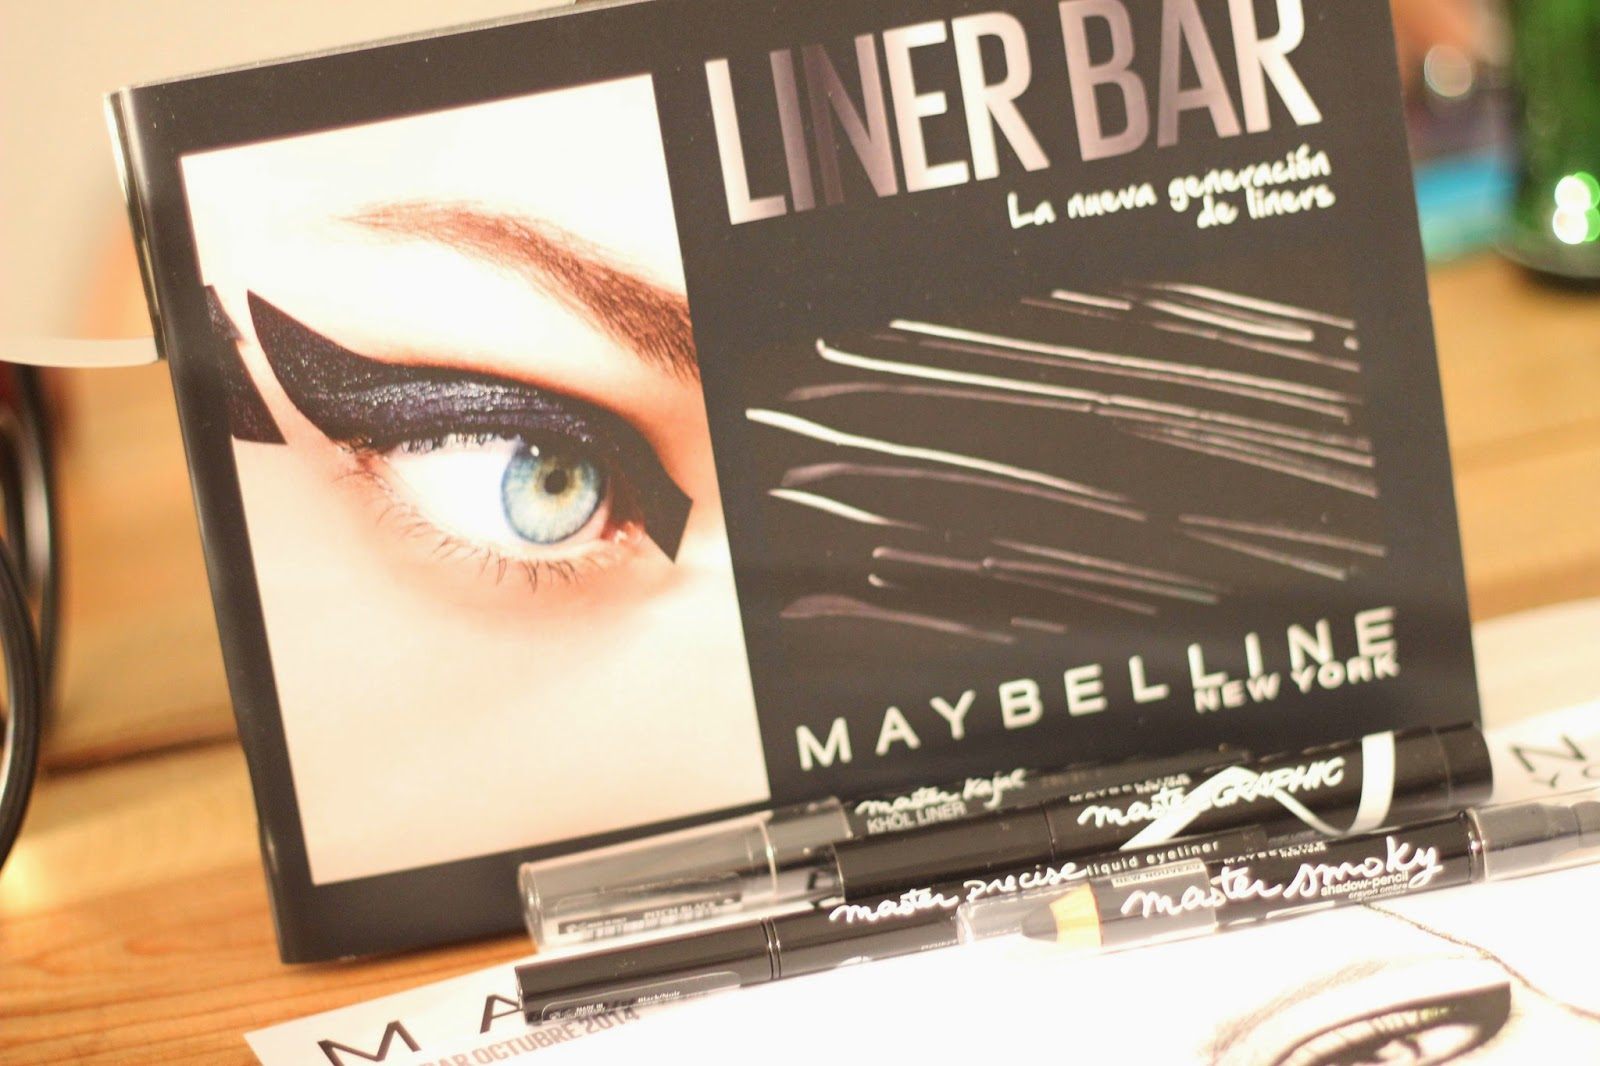 maybelline_ny-eyeliner-mastergrapichs-gato-maquillador-masterclass